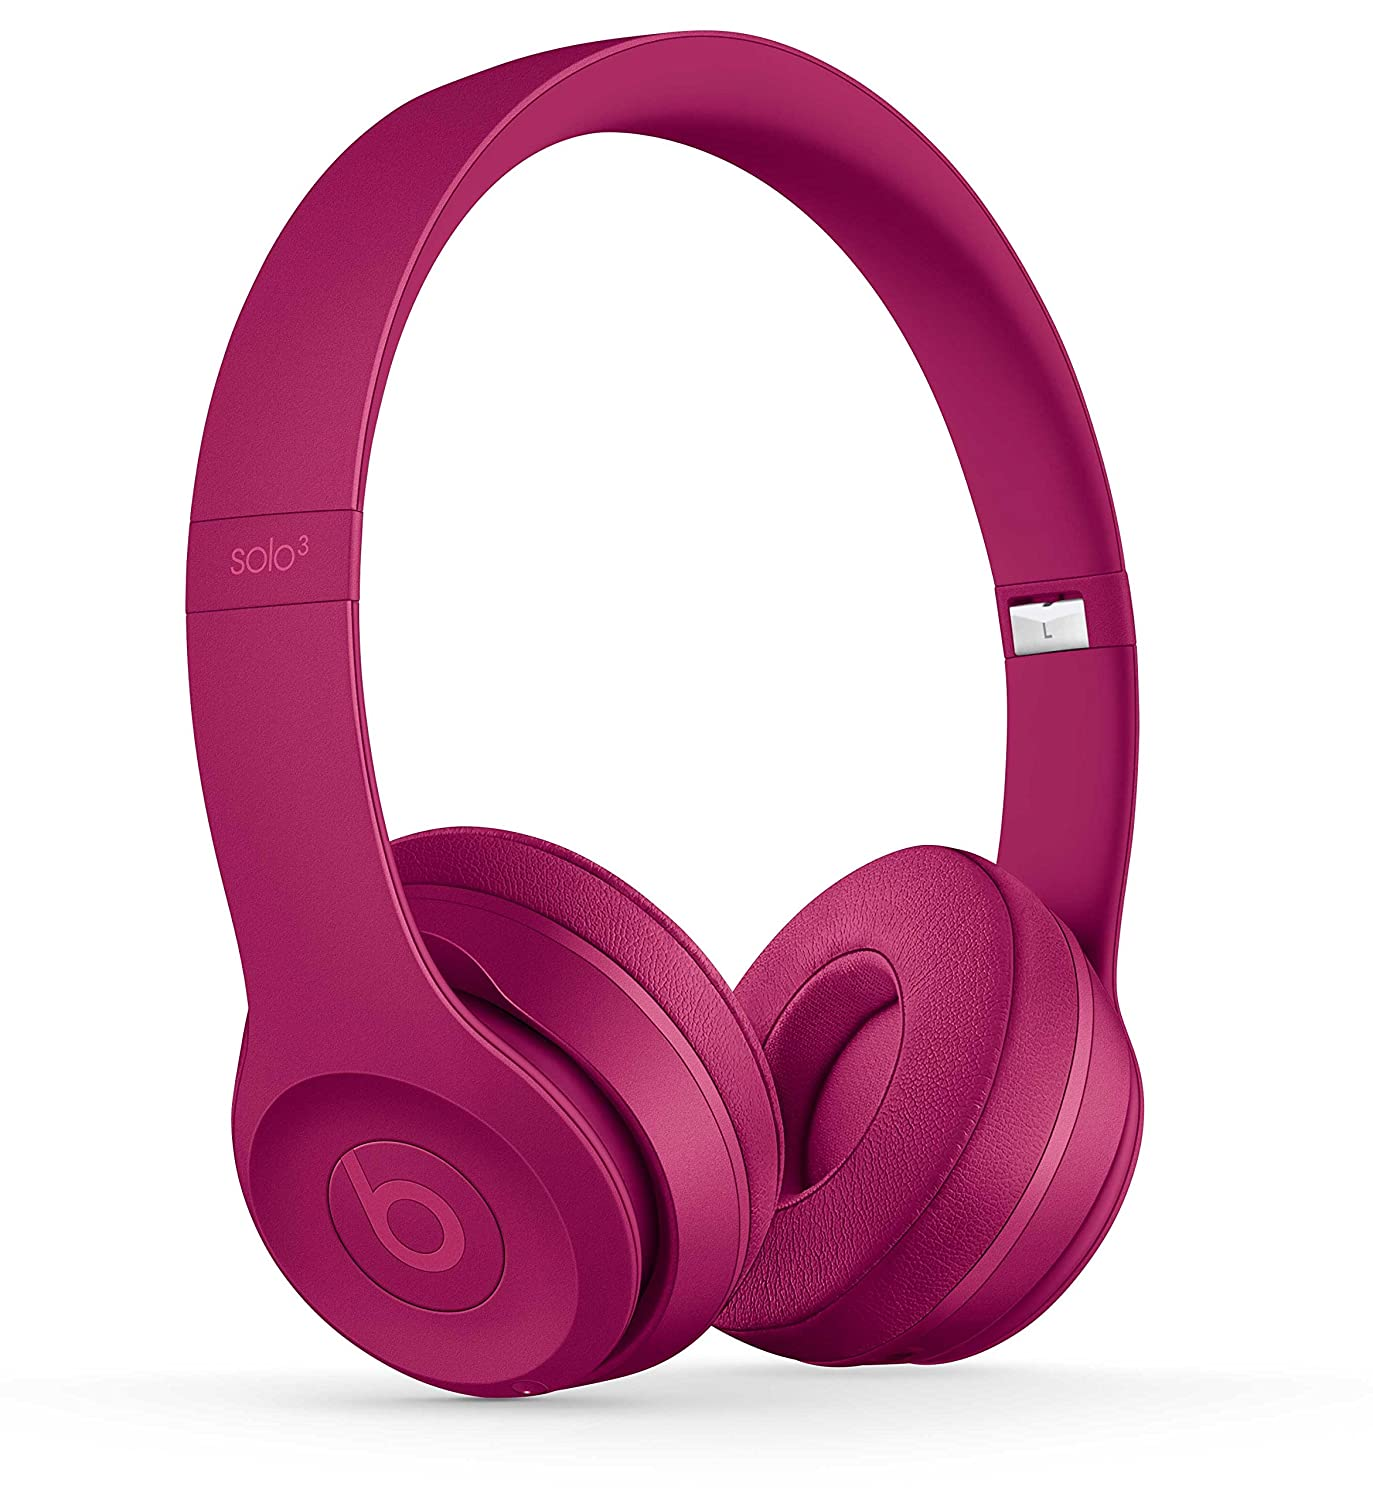 Beats Solo3 Wireless On-Ear Headphones - Neighborhood Collection - Brick Red